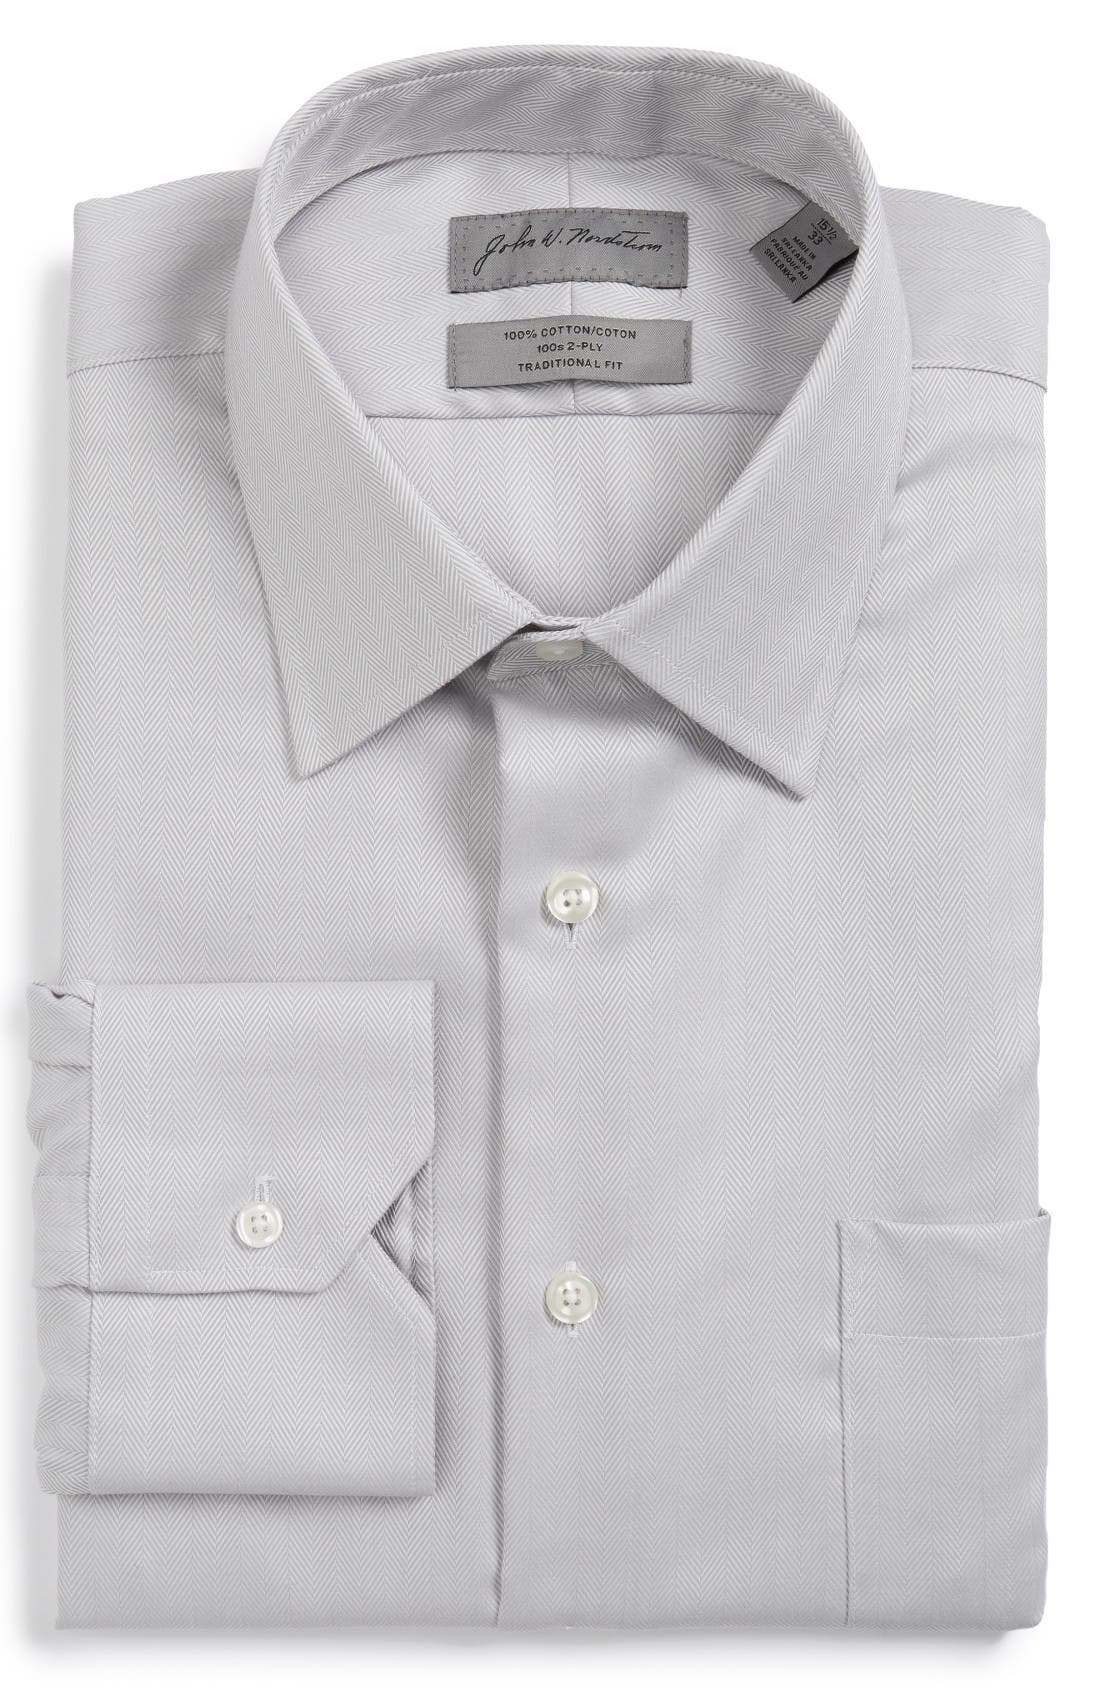 JOHN W. NORDSTROM® Traditional Fit Dress Shirt